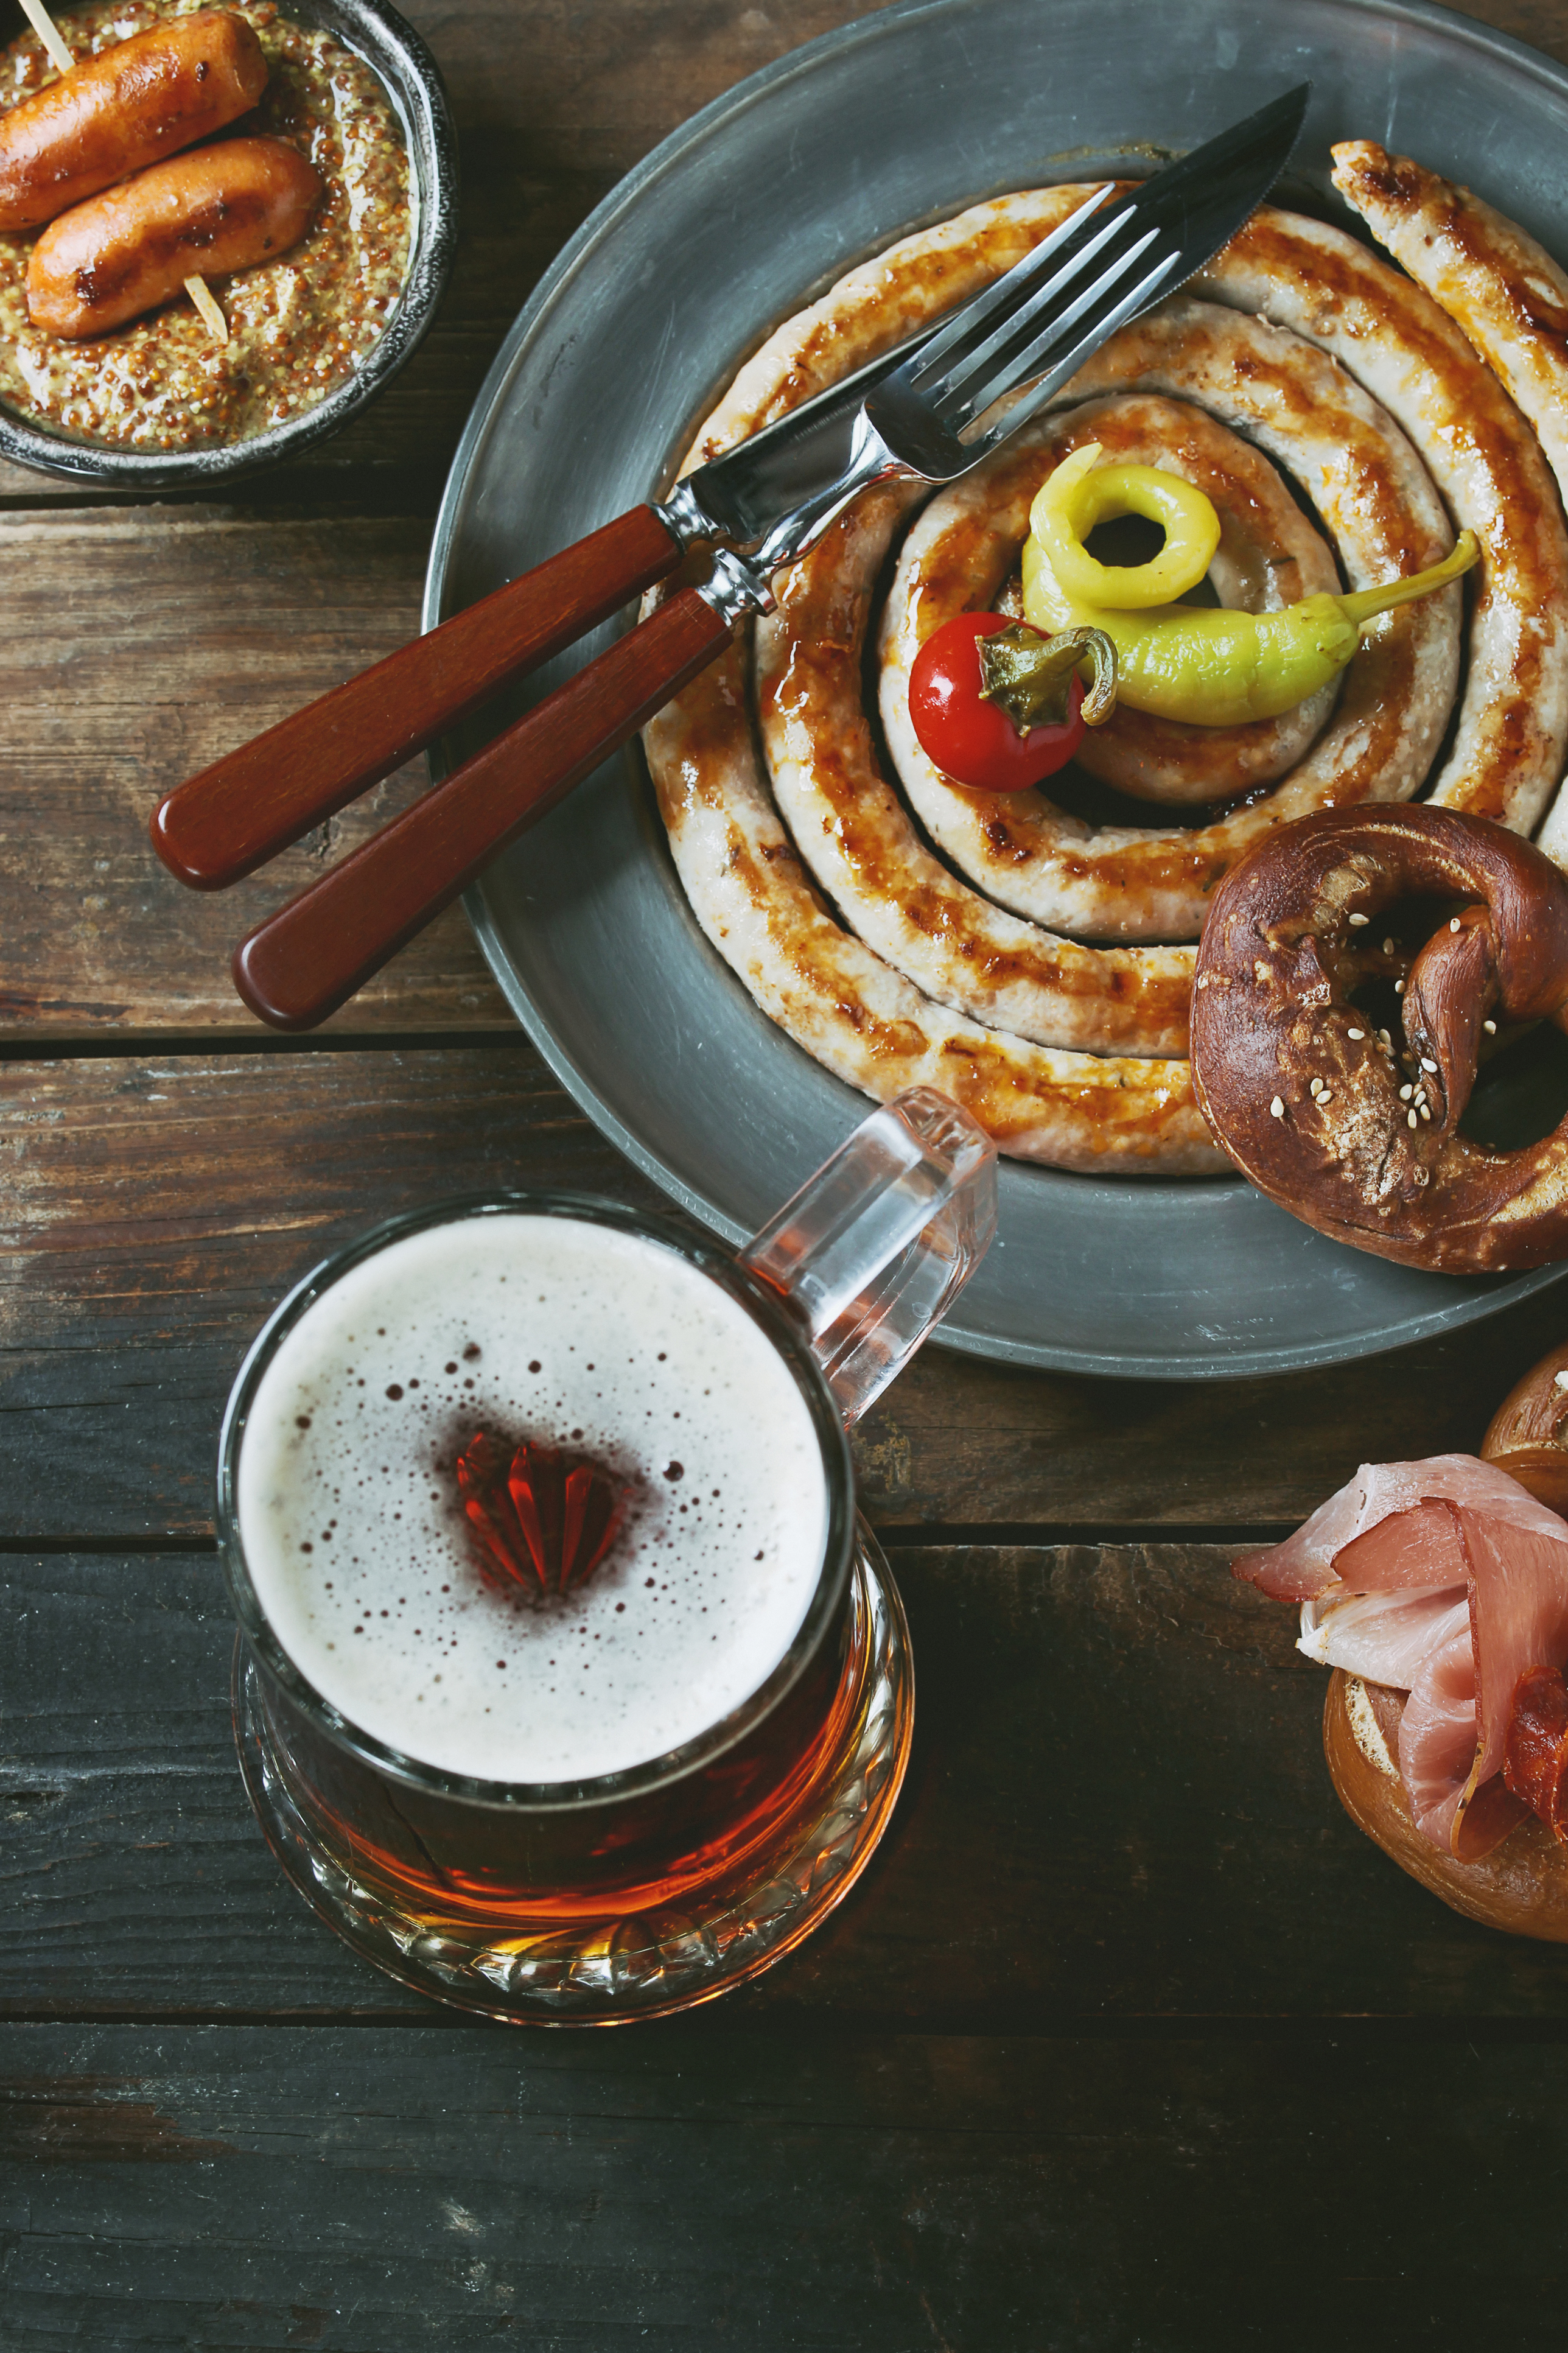 Big spiral fried sausage, meat snacks wienerwurst, ham, marinated chili peppers served in salted pretzels and plate with glass of lager beer and mustard over dark wooden background. Top view